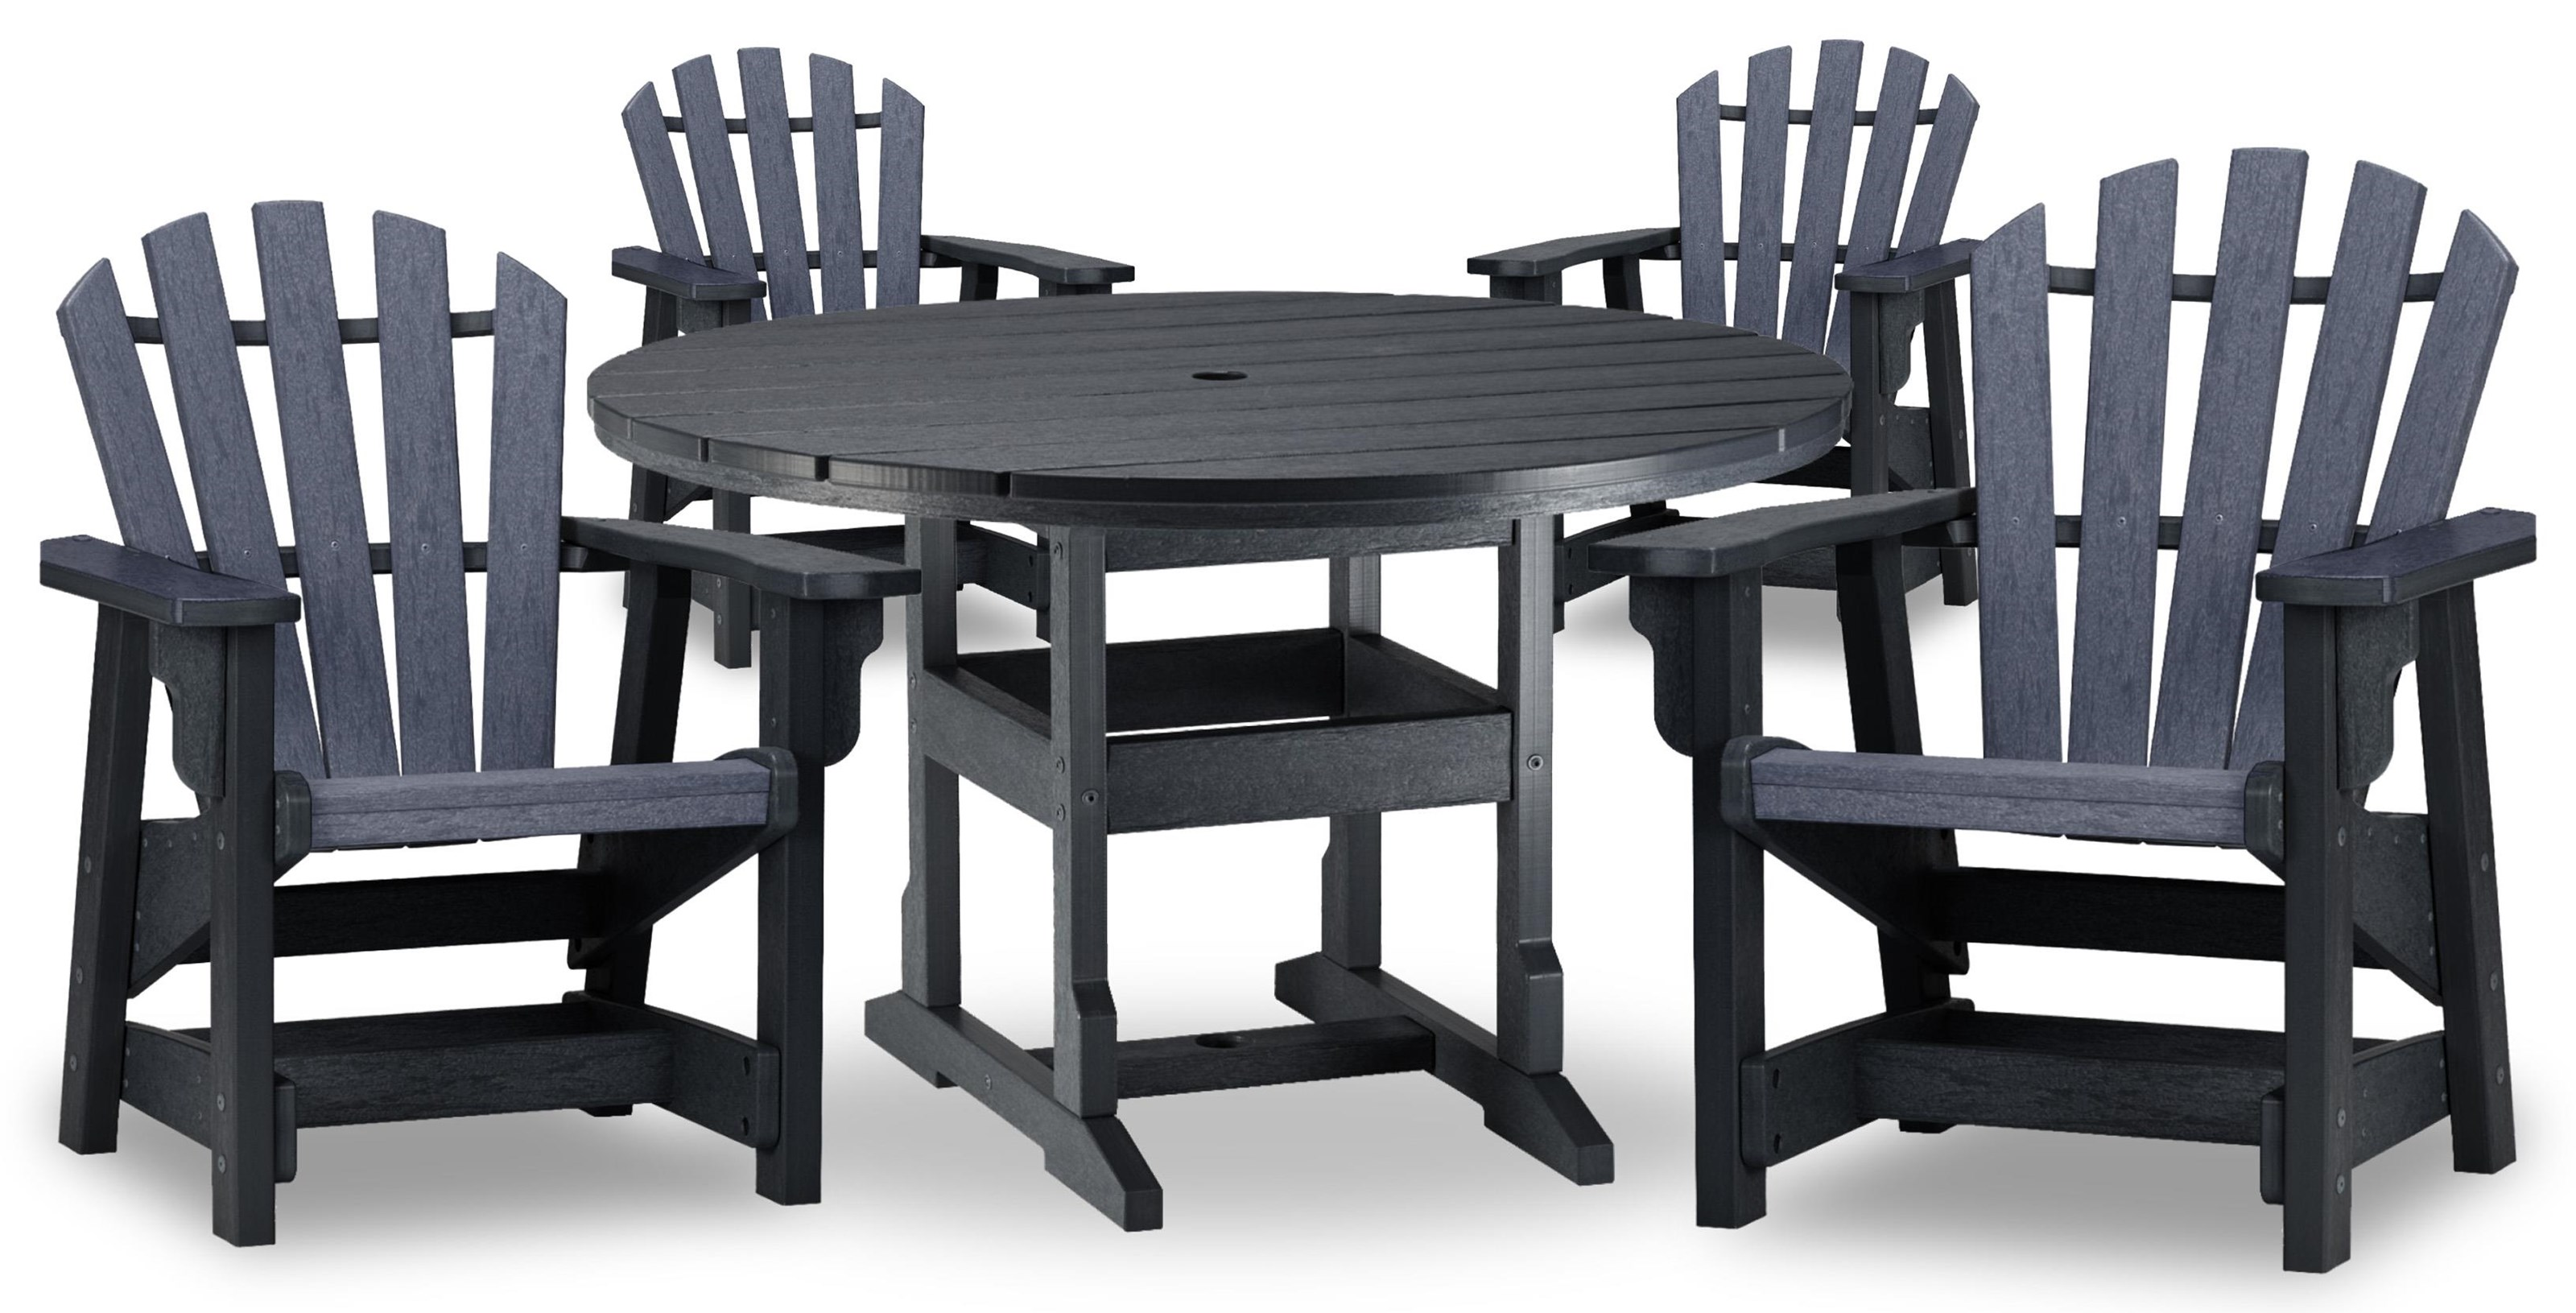 Coastal 48 inch Table and 4 Chairs by Breezesta at Johnny Janosik